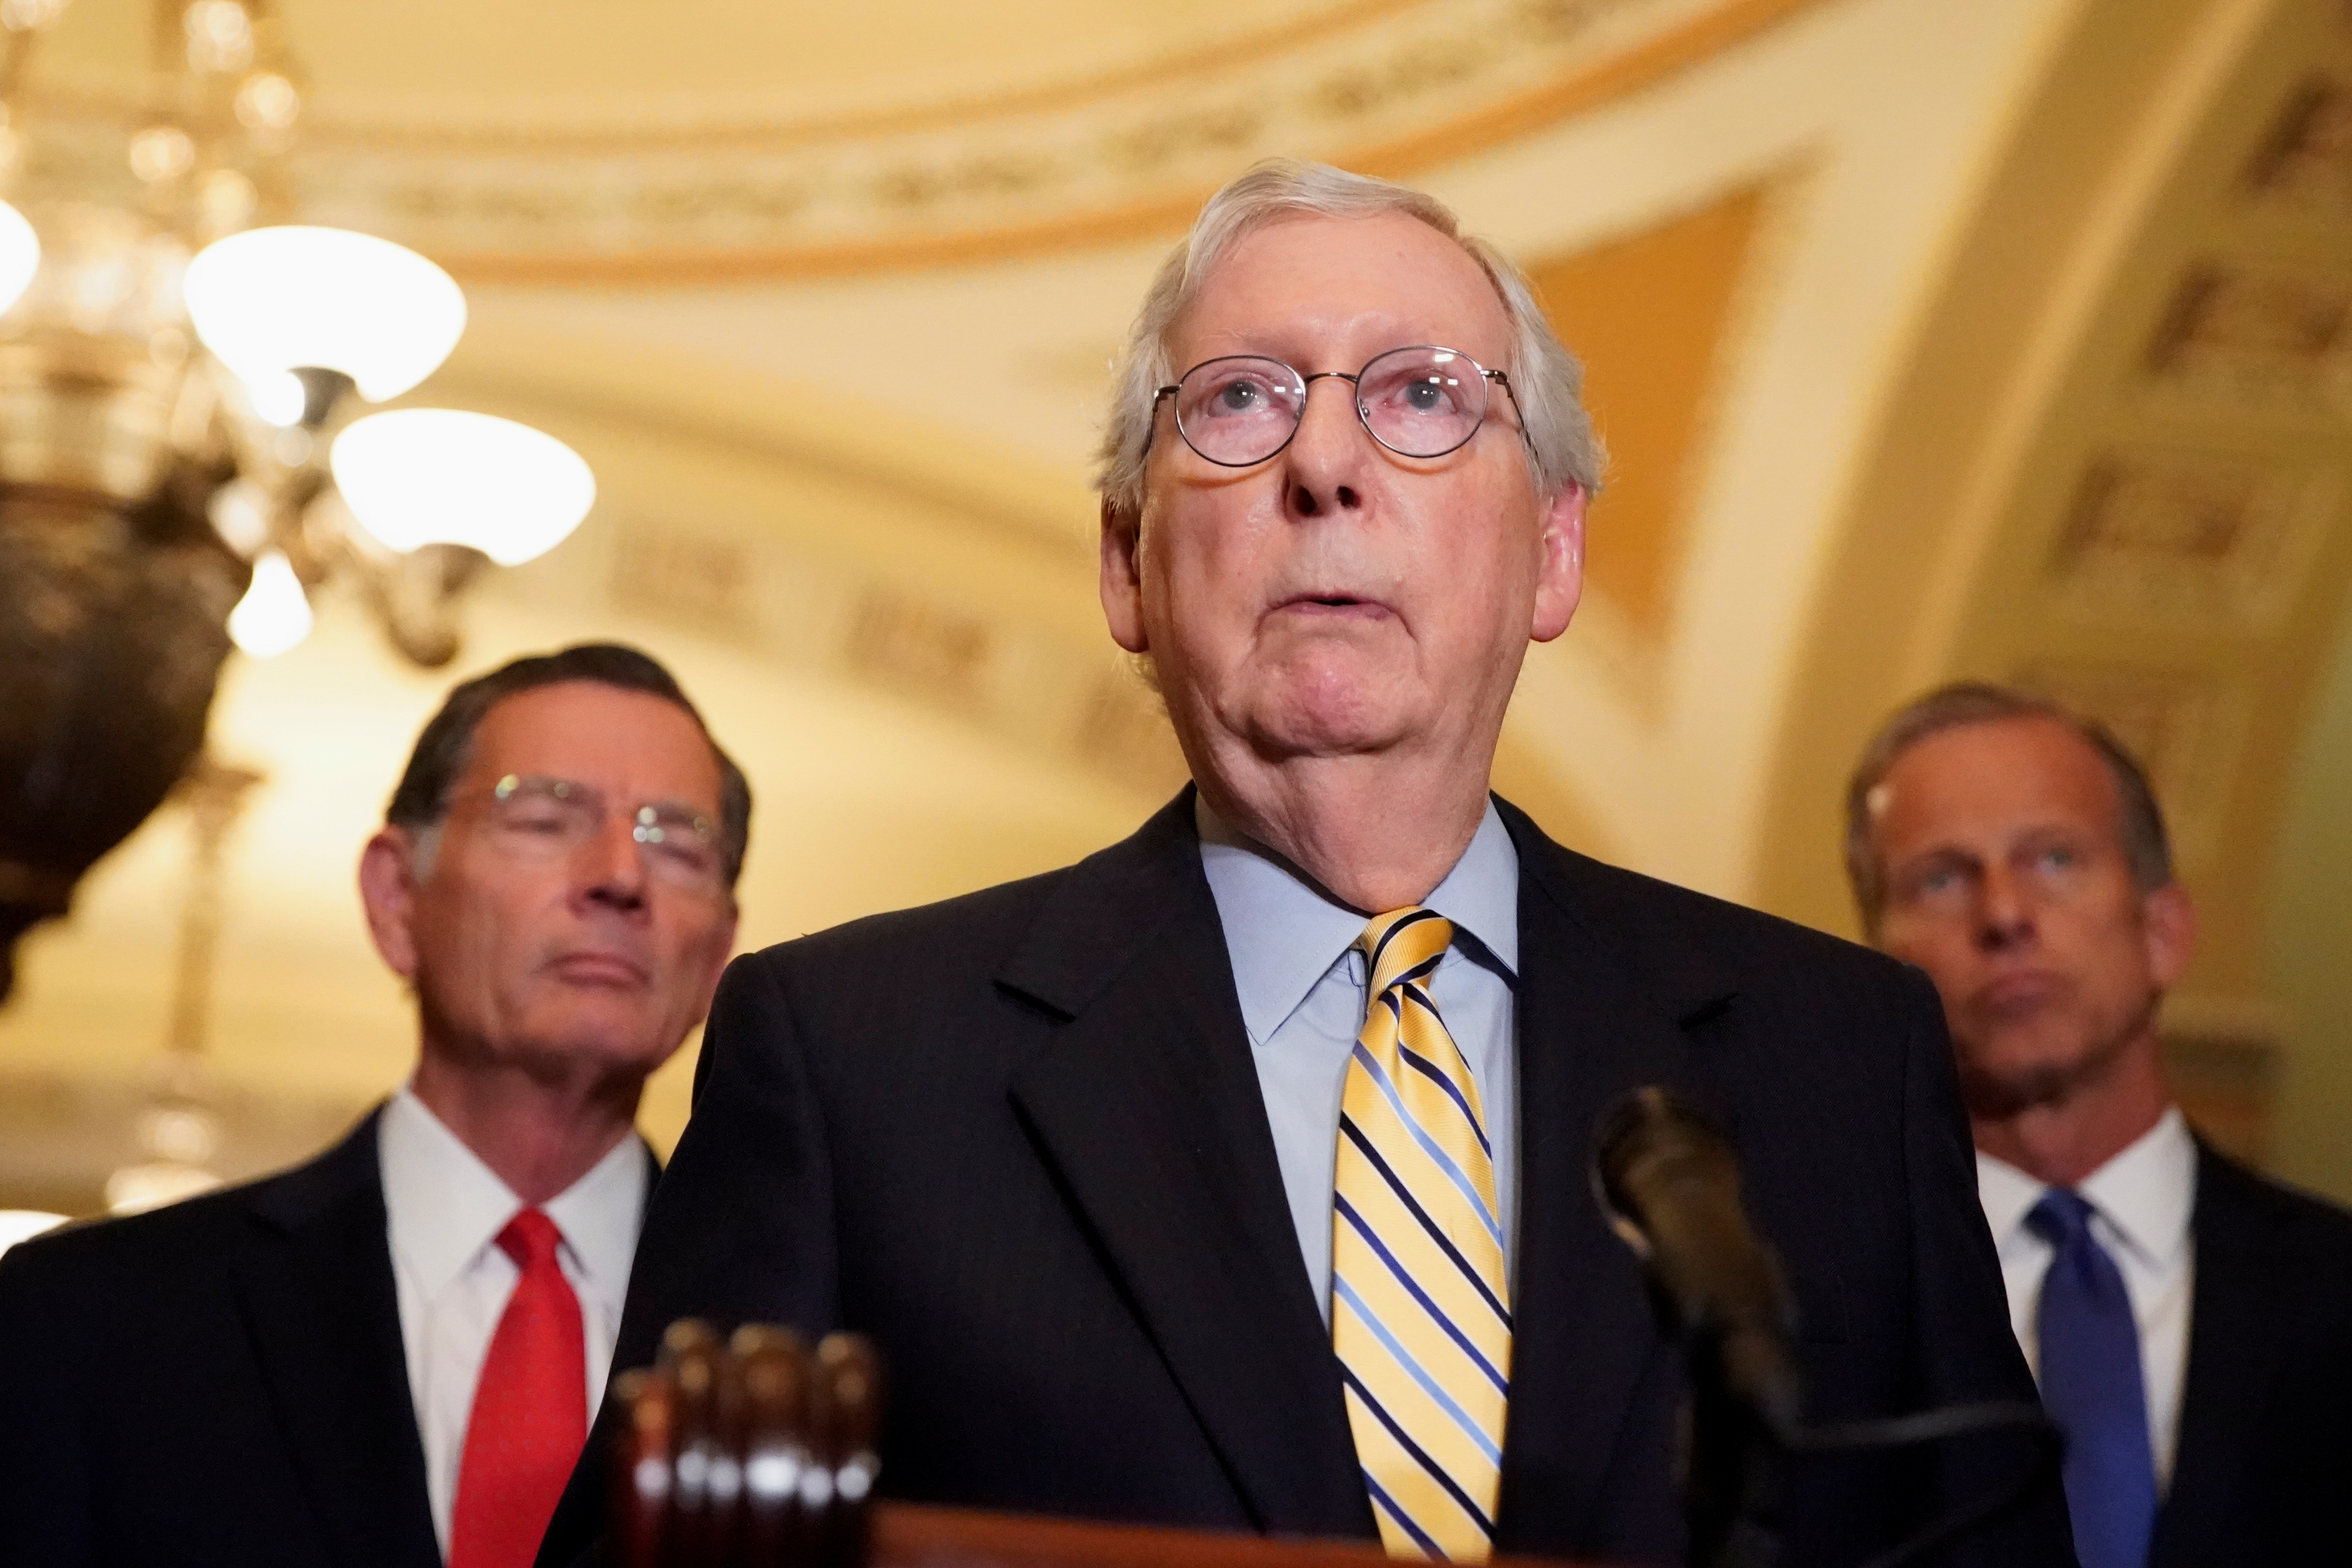 U.S. Senate Minority Leader Mitch McConnell speaks to reporters following the weekly Senate lunch at the U.S. Capitol in Washington, D.C., U.S., September 21, 2021. REUTERS/Elizabeth Frantz